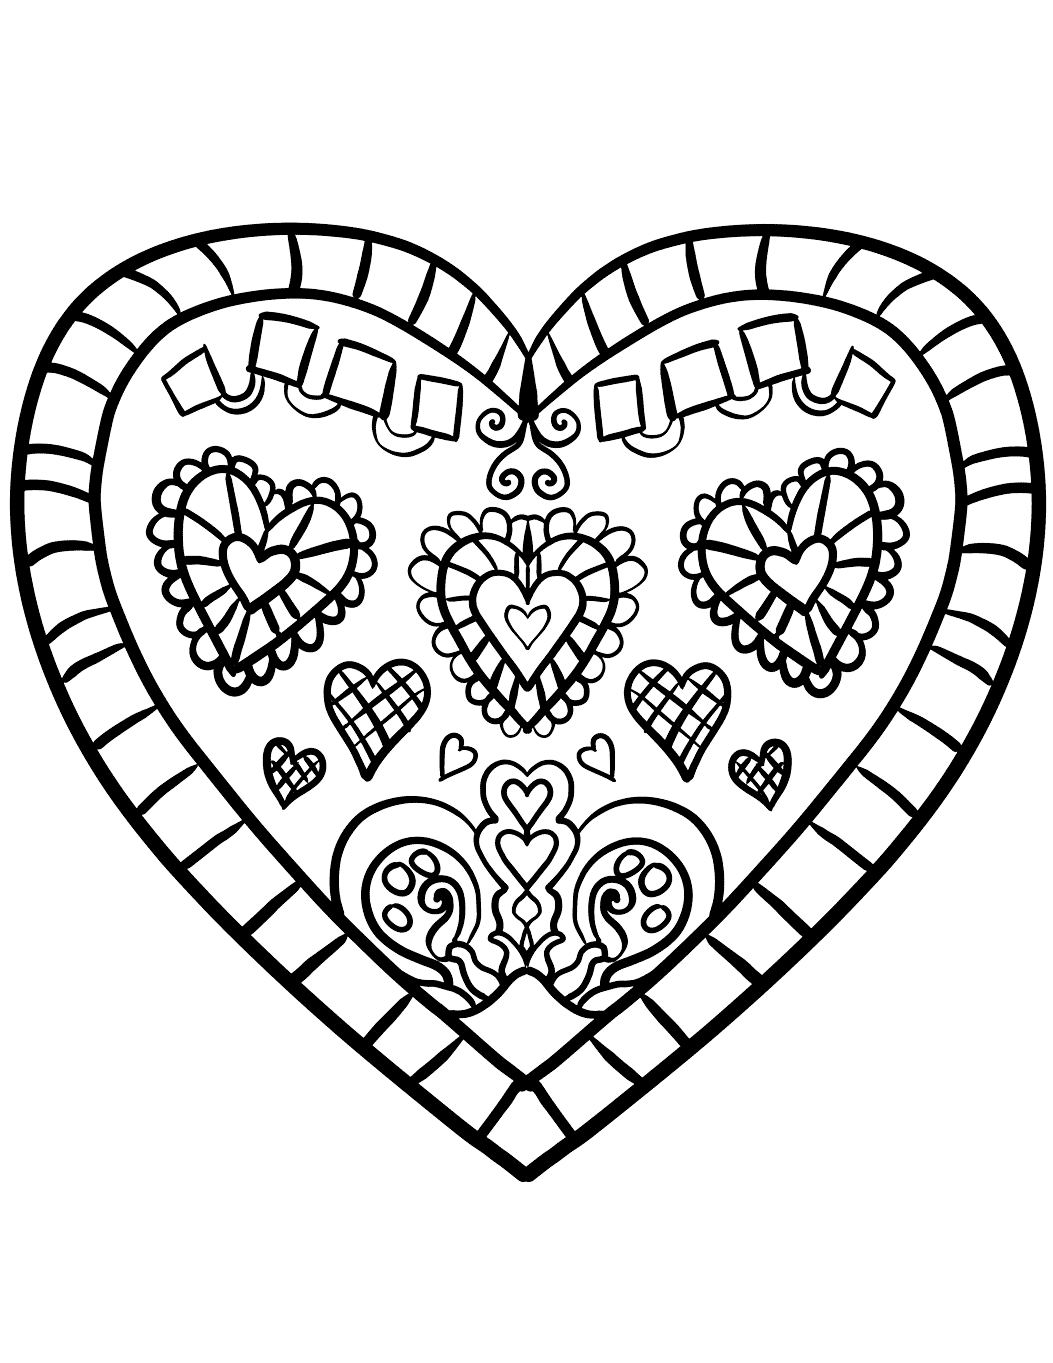 kids heart coloring pages valentine coloring pages best coloring pages for kids coloring heart pages kids